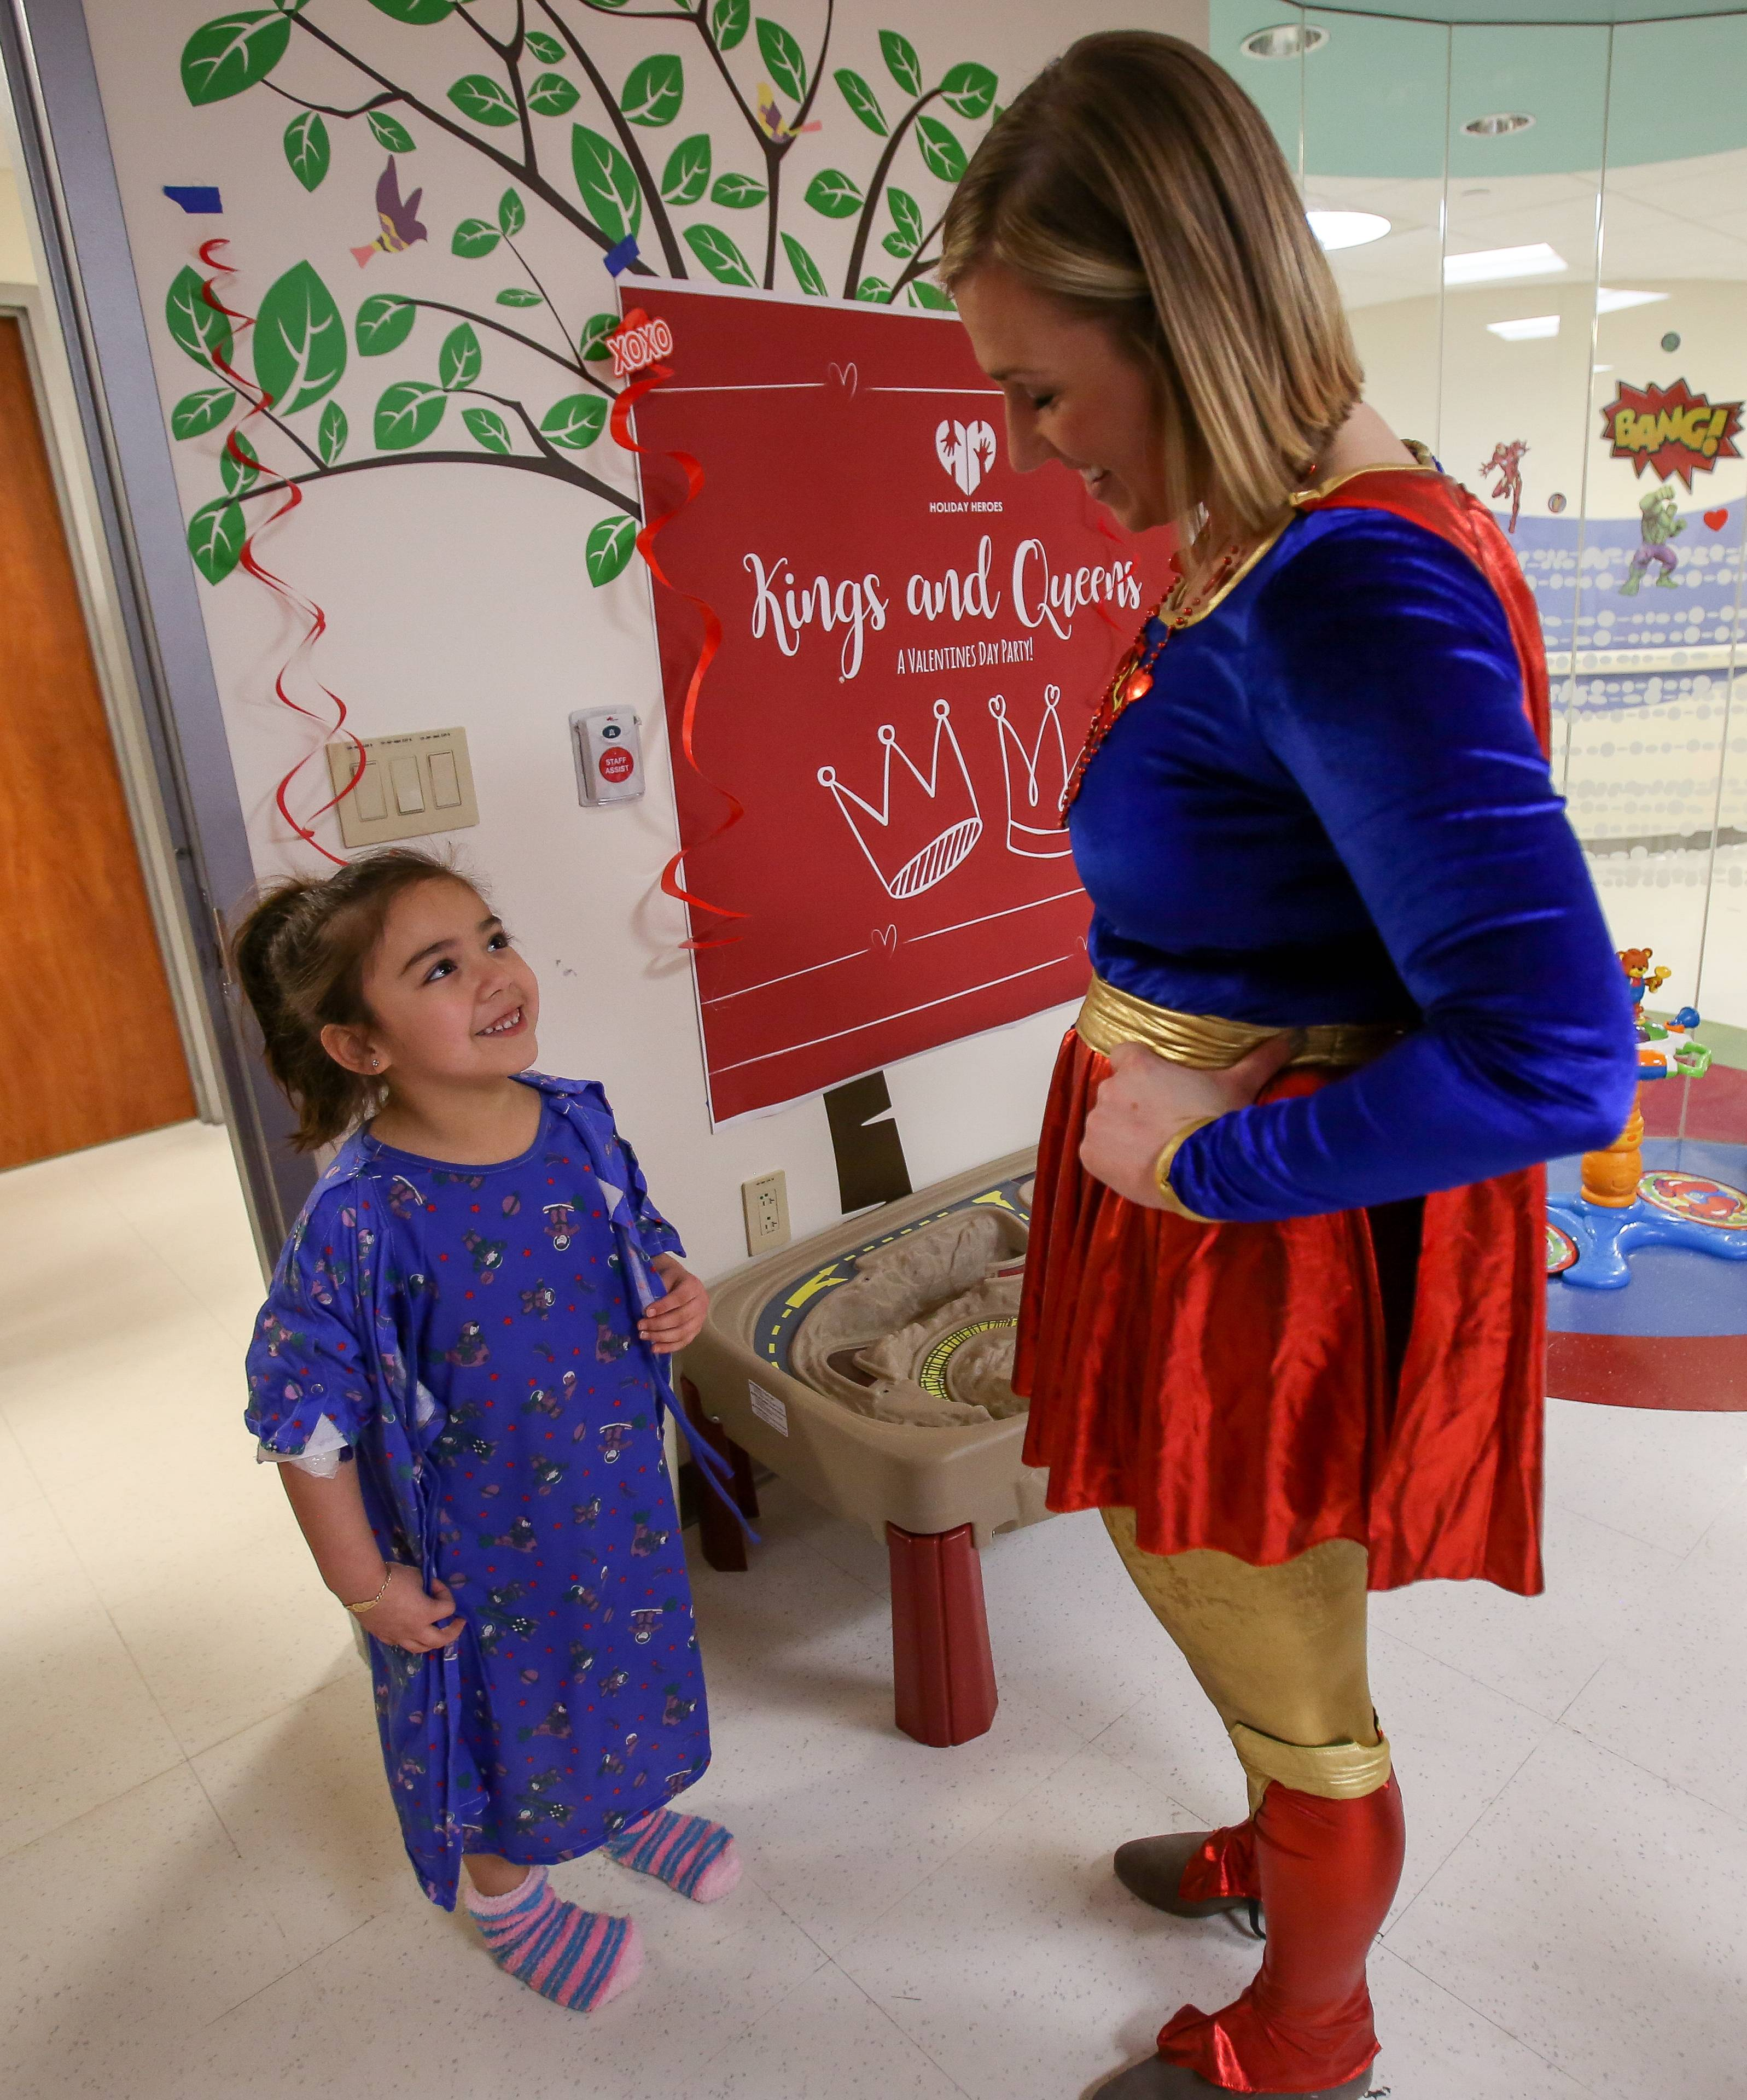 Camila Acosta, 5, of Aurora meets Supergirl during the hero's visit to deliver valentines to pediatric patients Thursday at Northwestern Medicine Central DuPage Hospital in Winfield. Supergirl was portrayed by Morgan Olenski, an associate board member with Holiday Heroes.